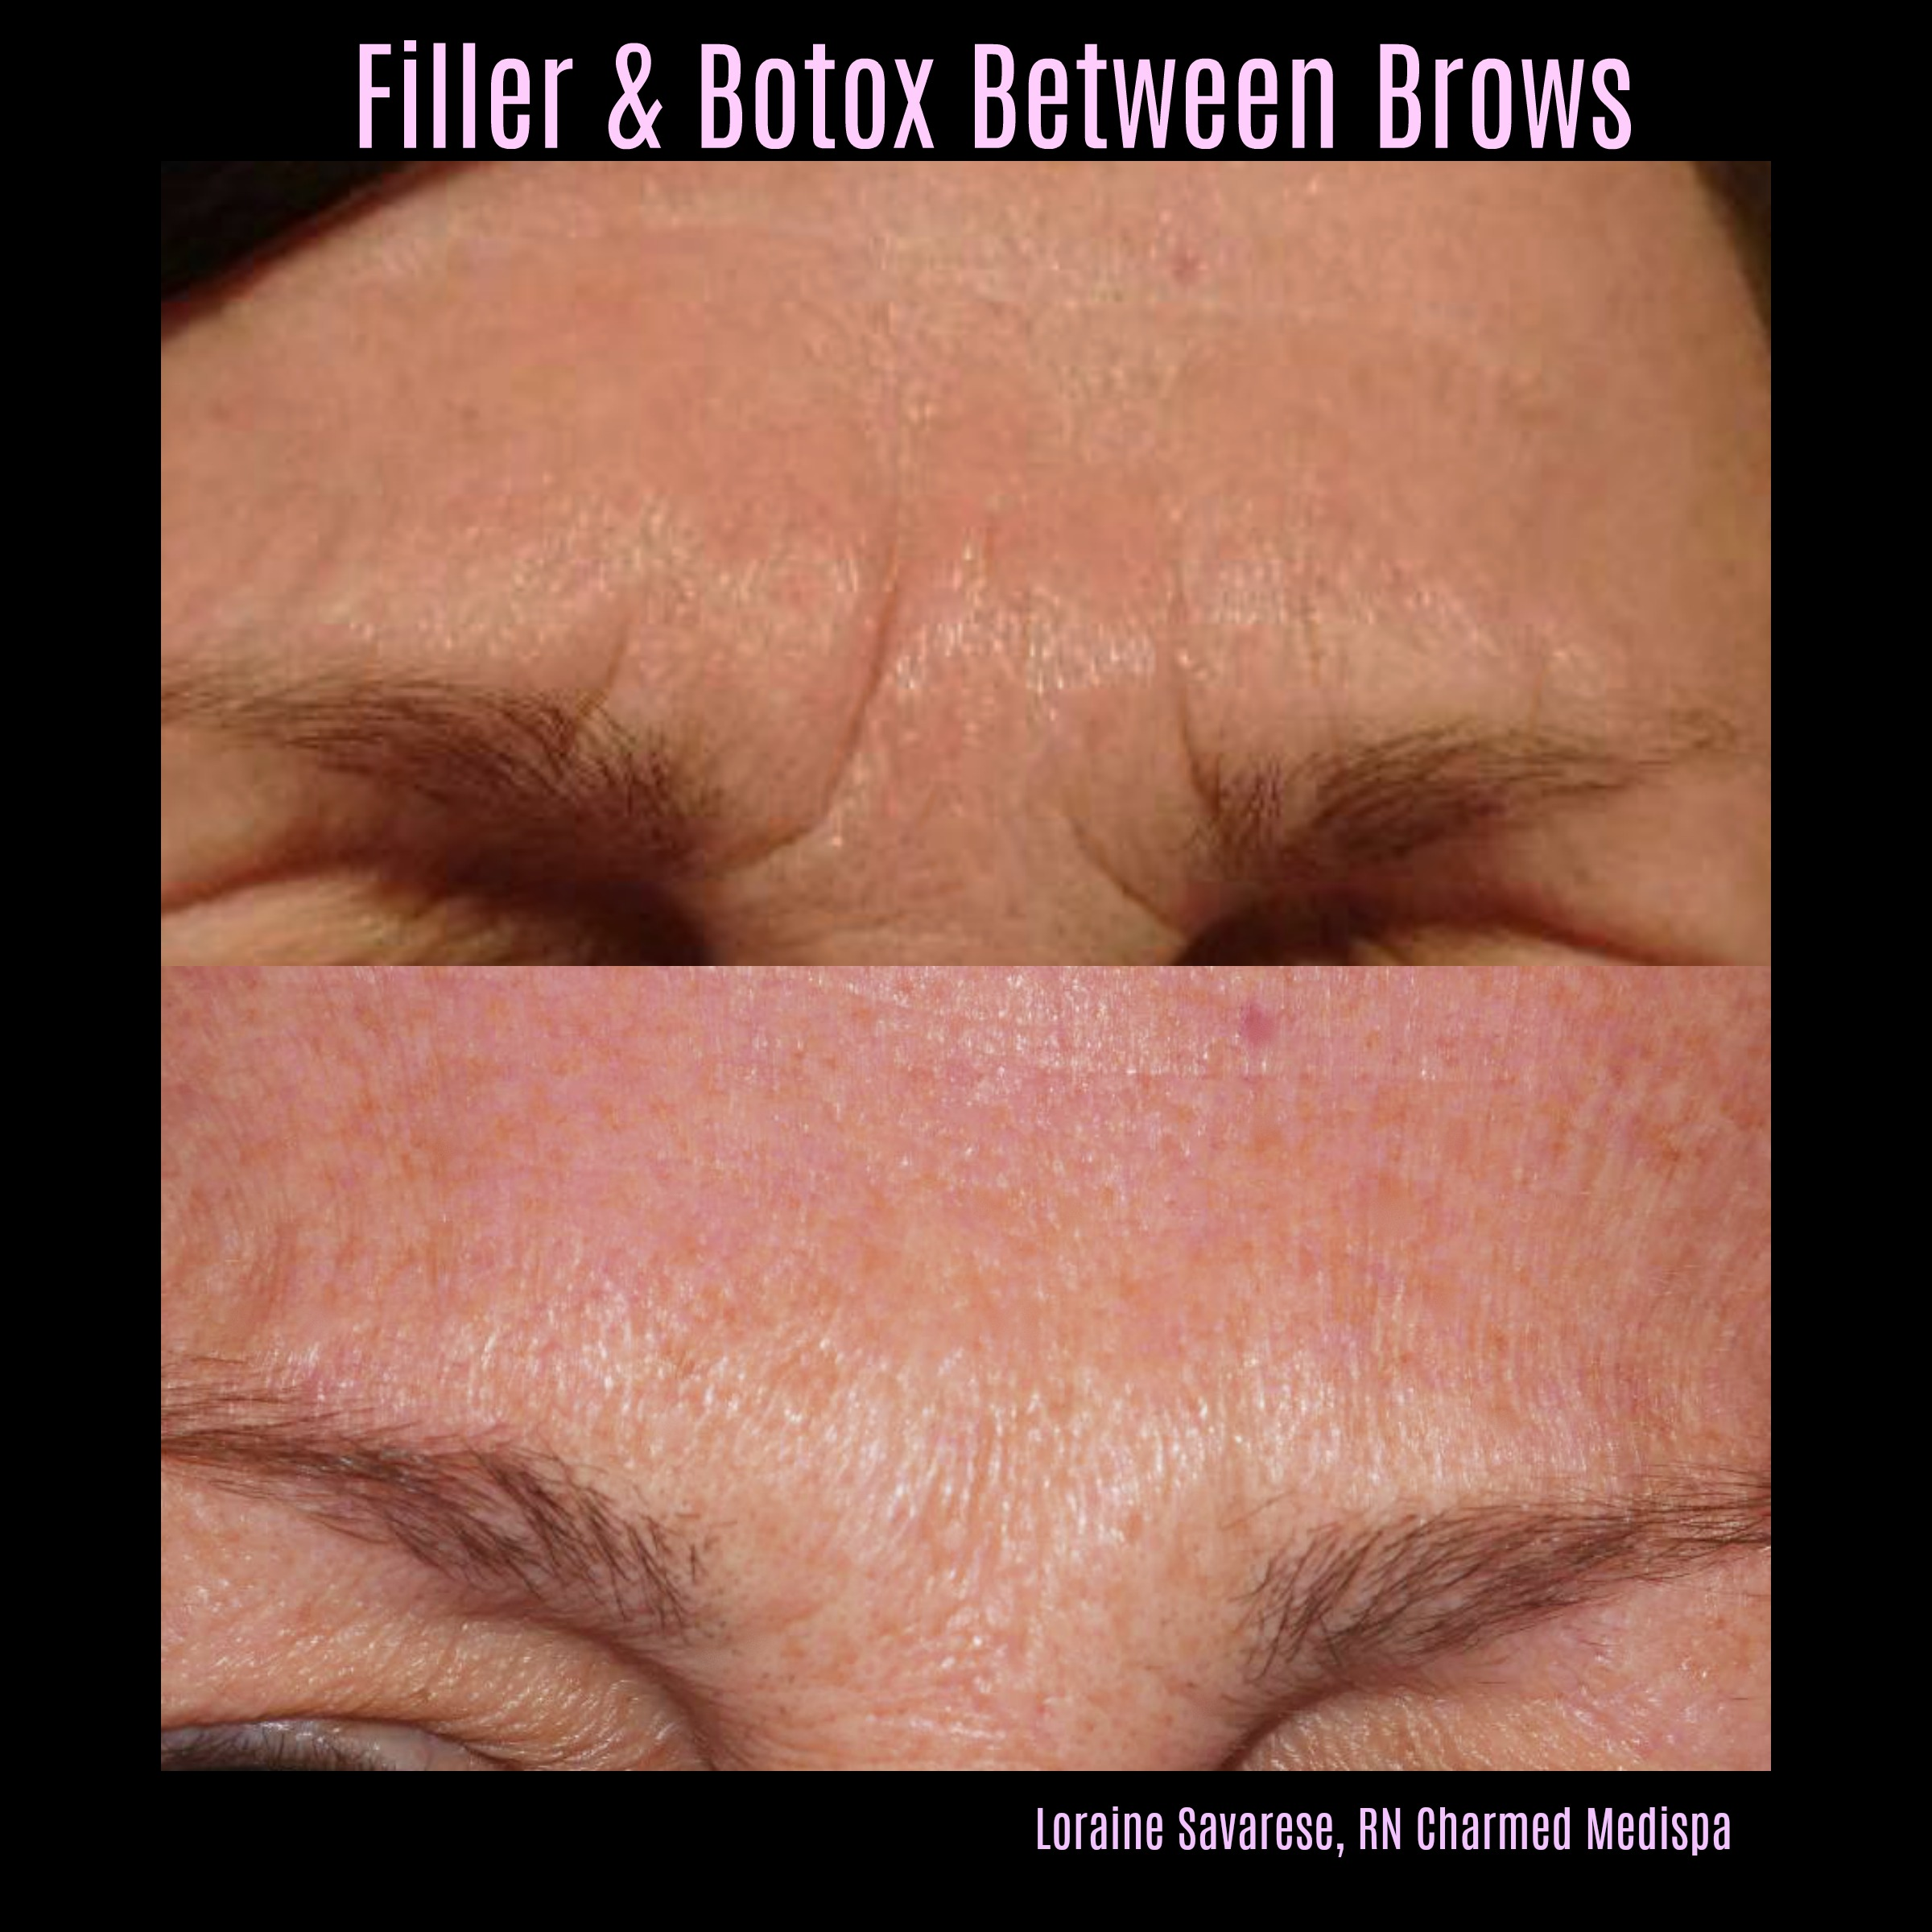 Filler Botox Between Brows